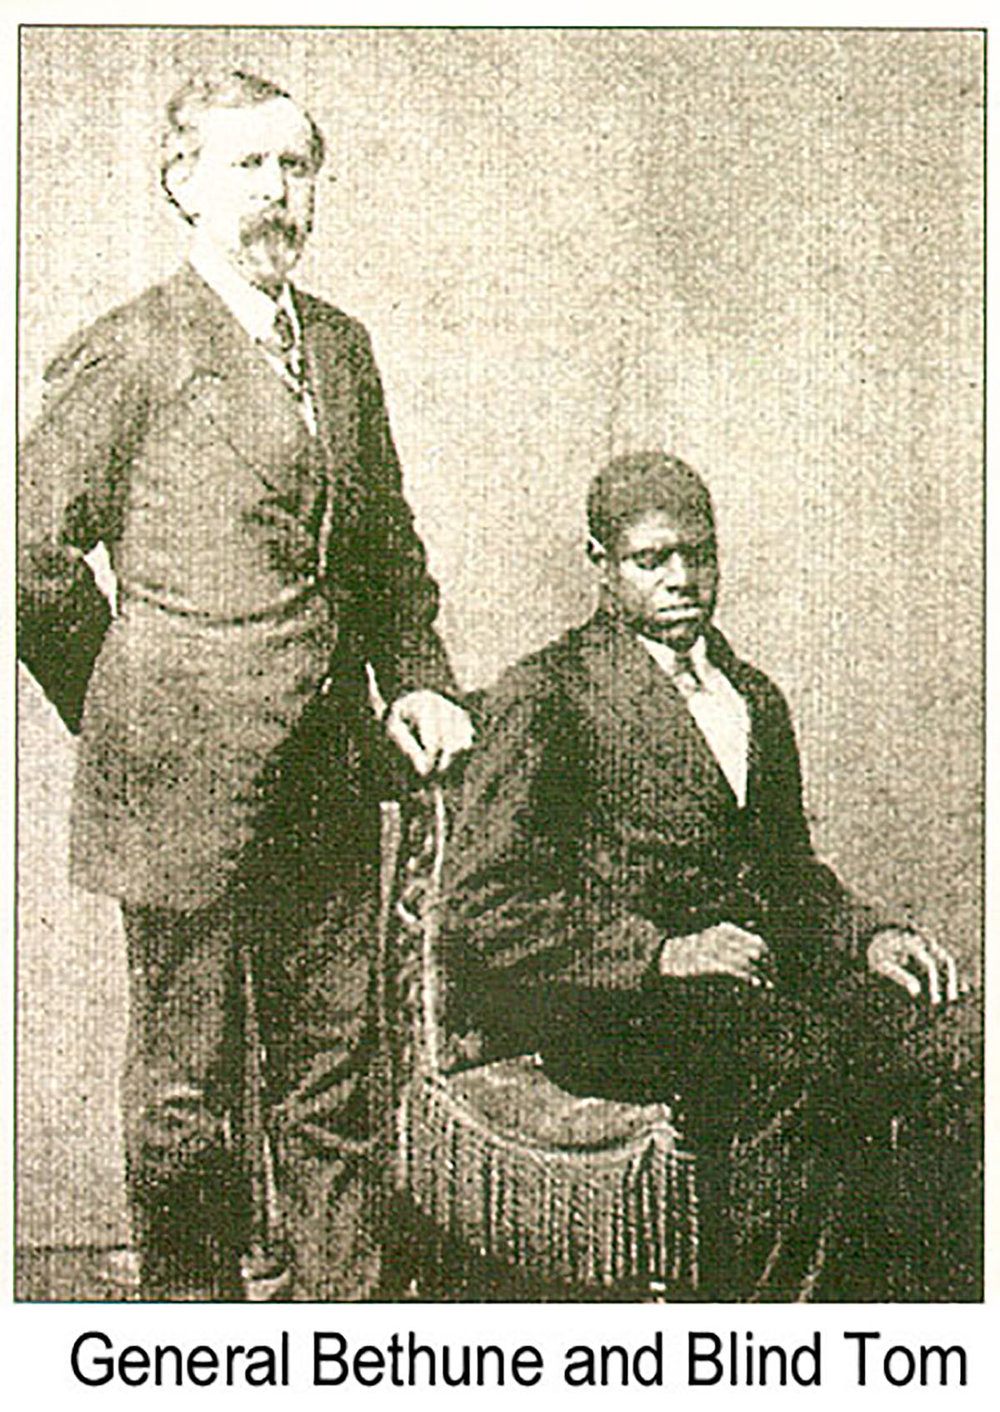 James N. Bethune & Blind Tom picture.jpg